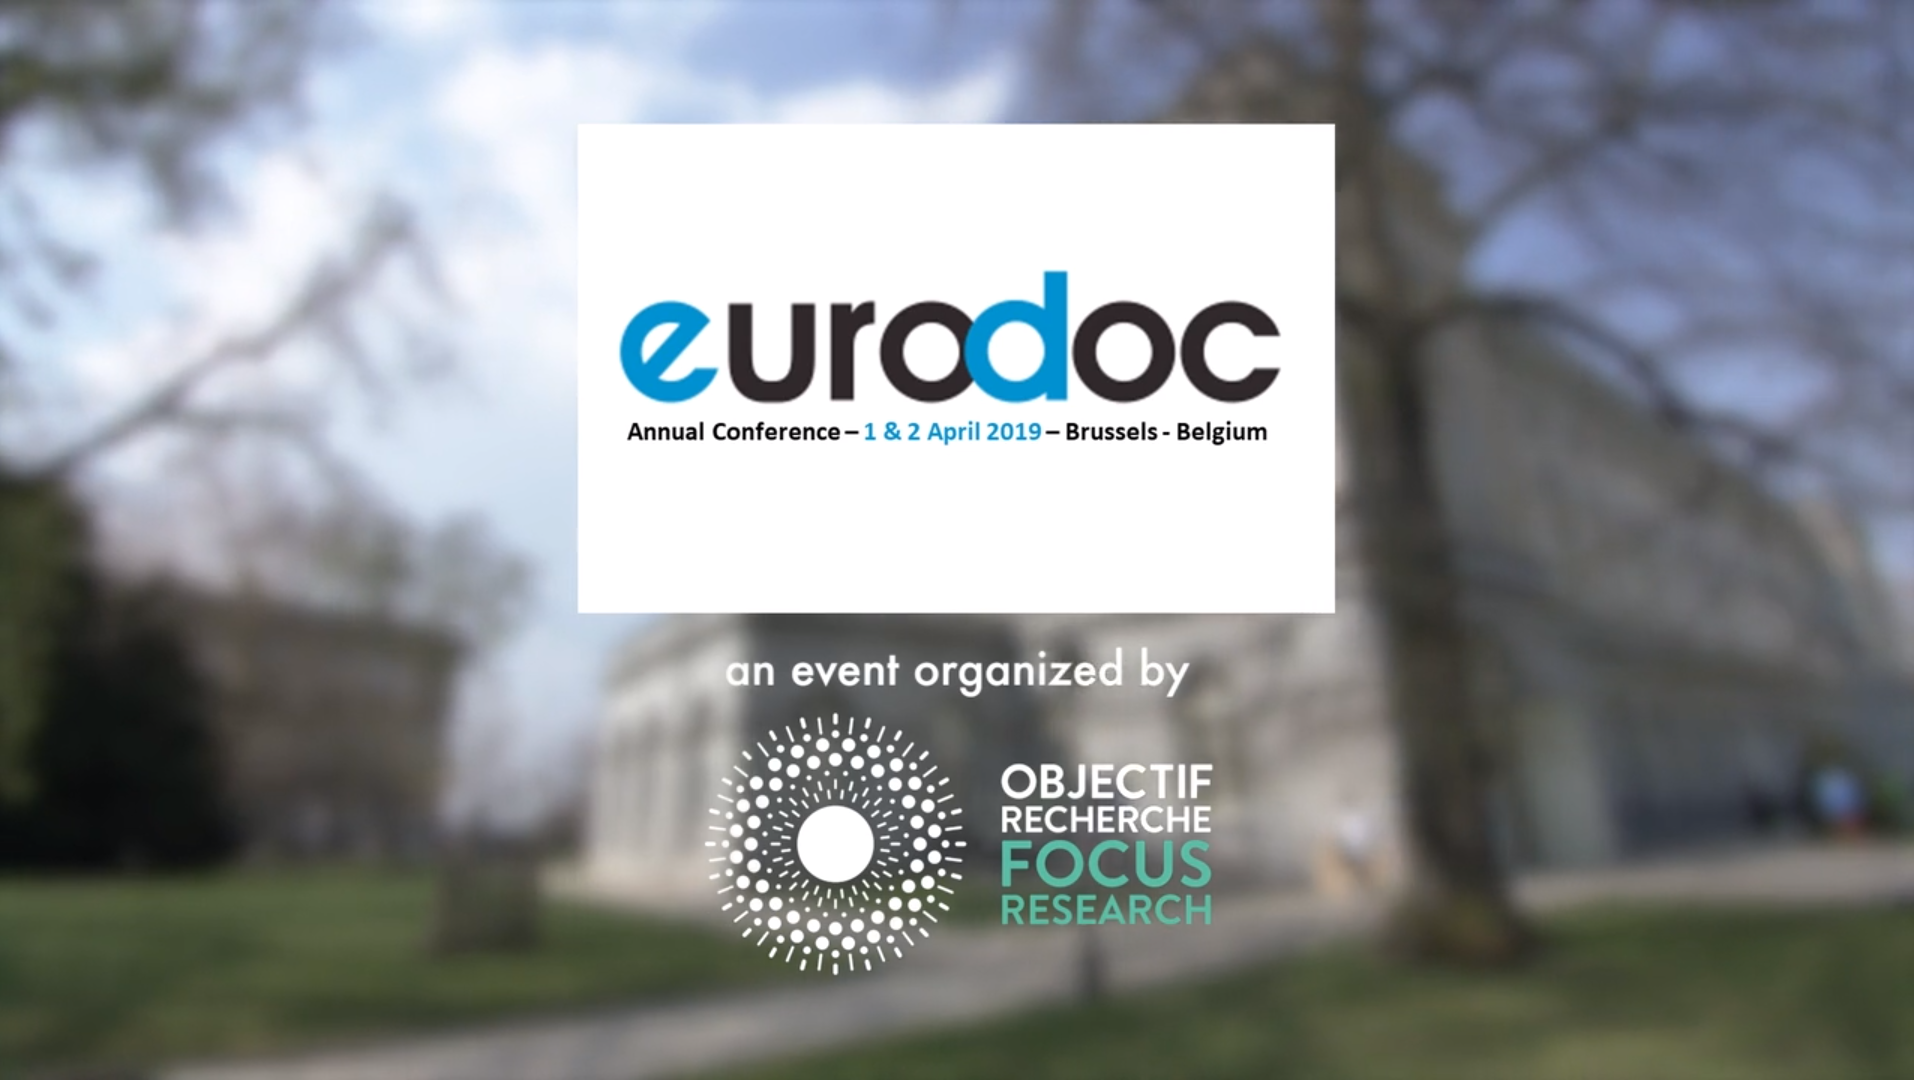 Eurodoc Event in Brussels